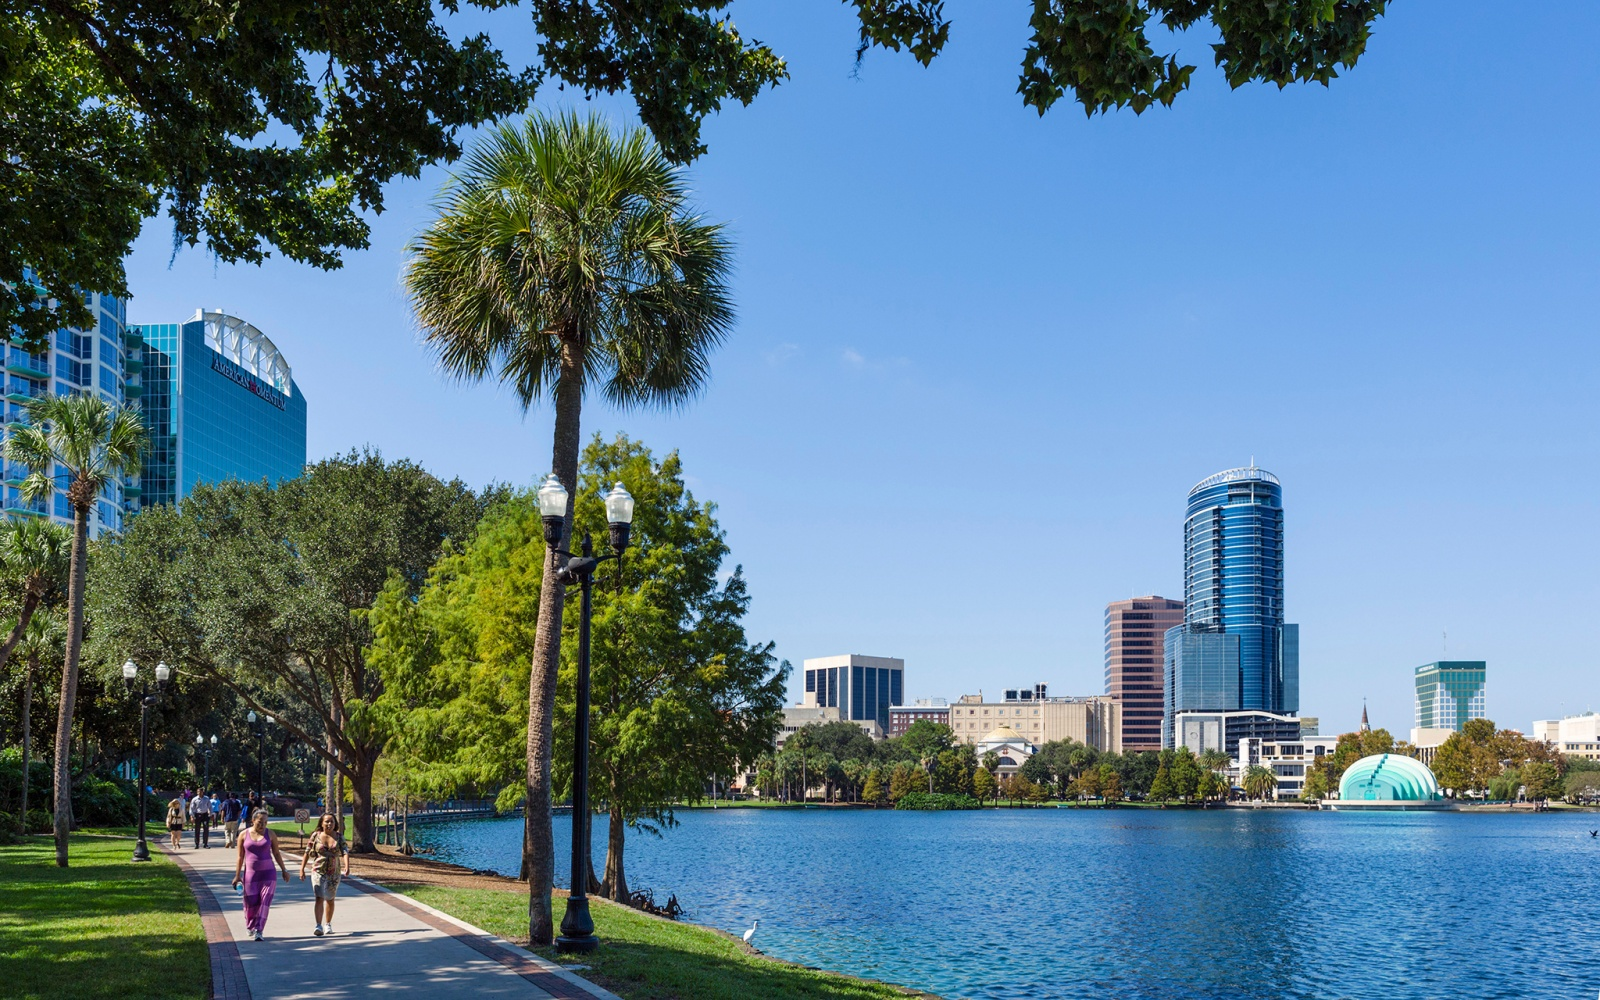 waterfront park in Orlando, FL